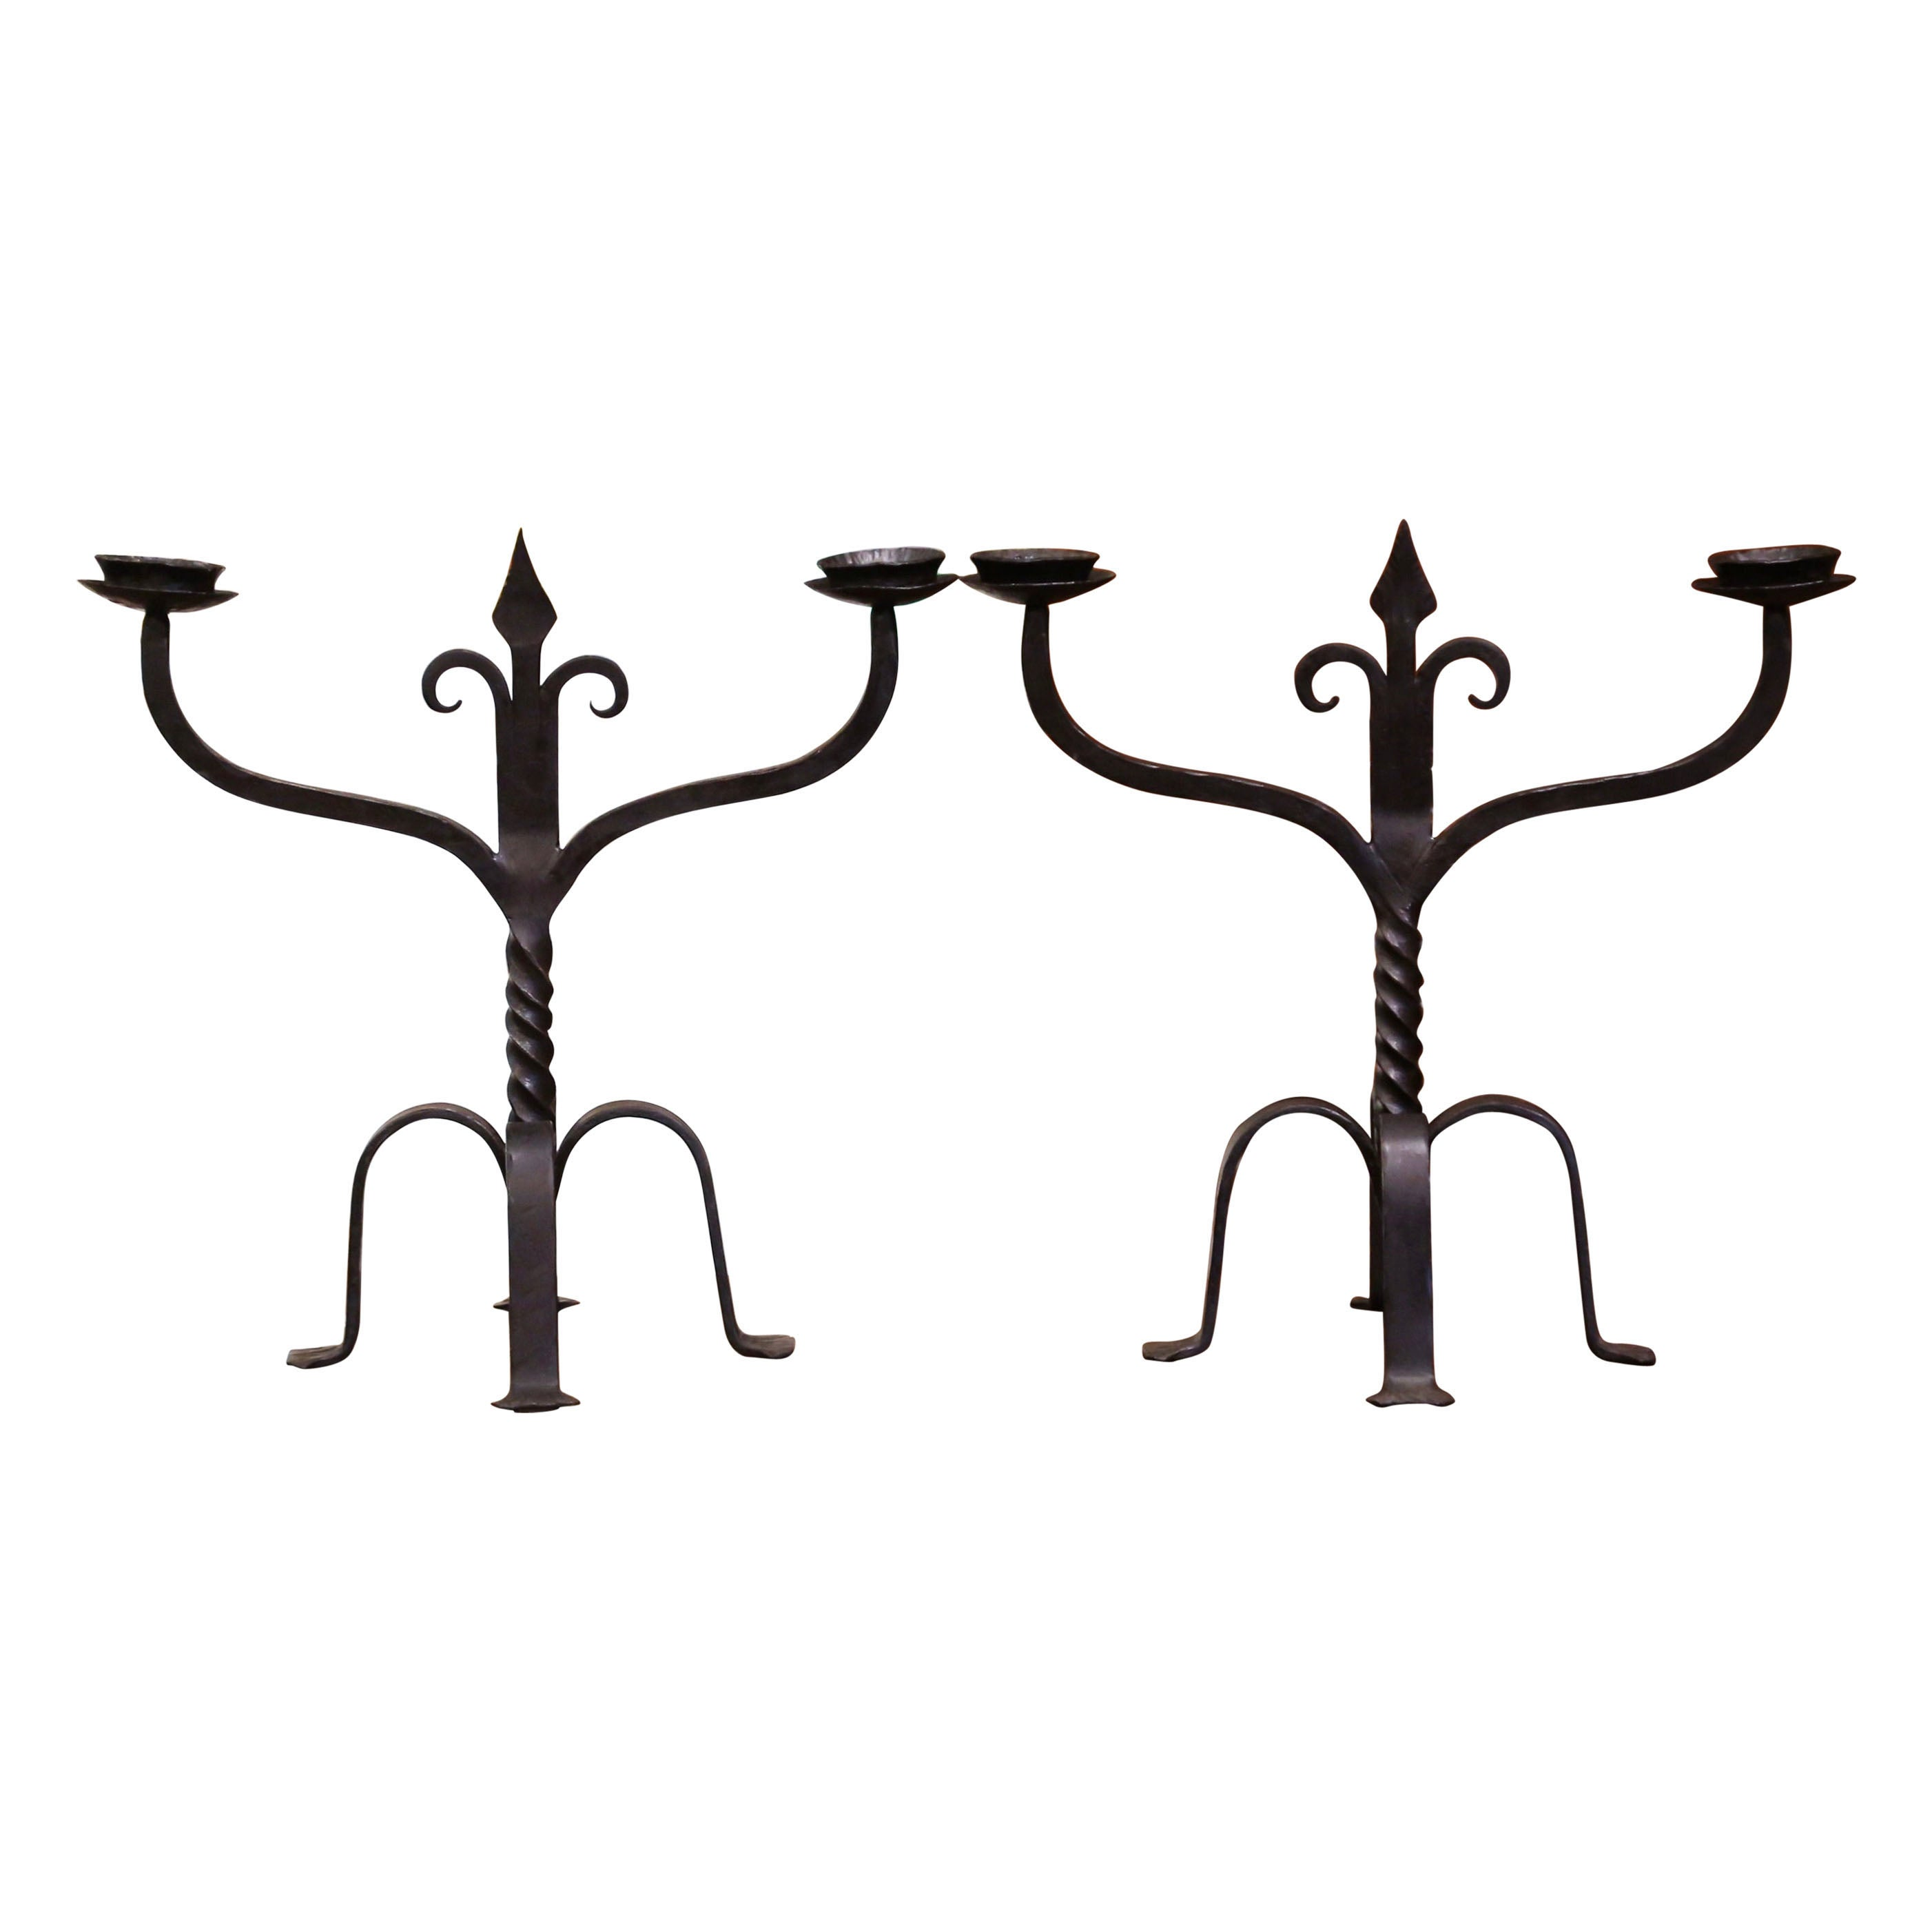 Pair of 19th Century French Gothic Revival Wrought Iron Two-Arm Candelabras